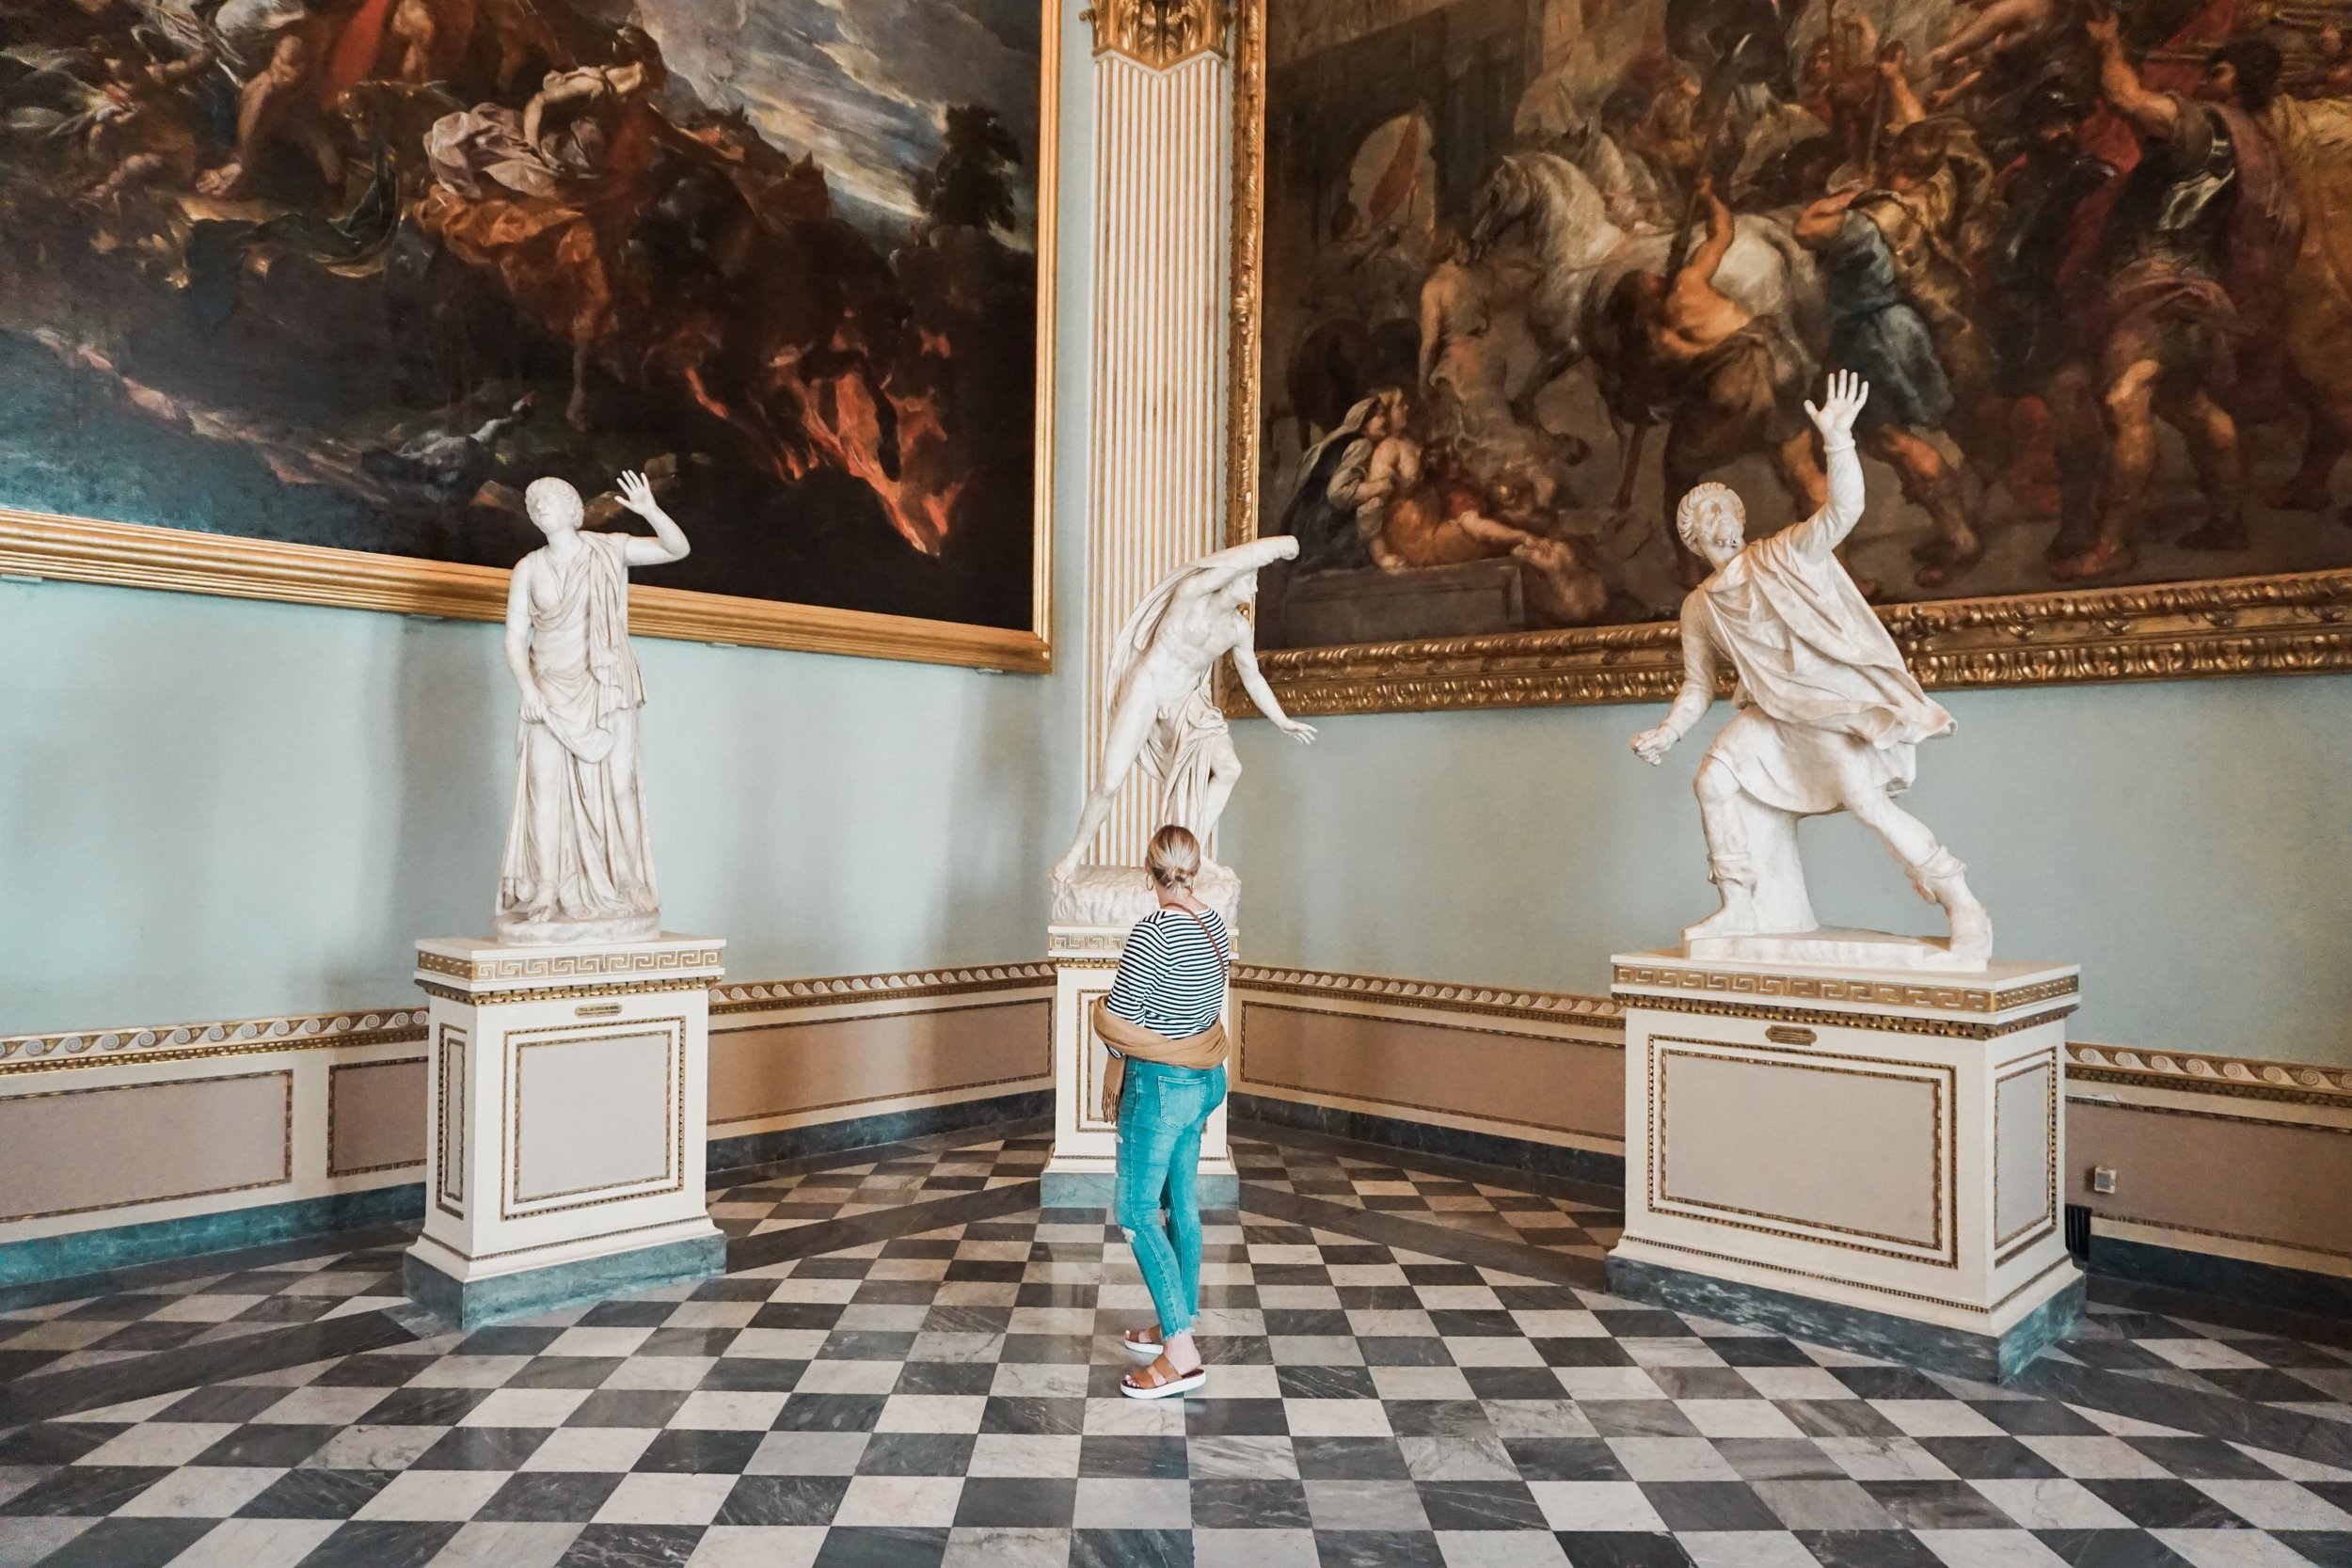 They also happen to have some of the most famous pieces of art work in the world. Michelangelo's Statue of David, The Gates Of Paradise, The Birth of Venus, The Fountain of Neptune, etc.